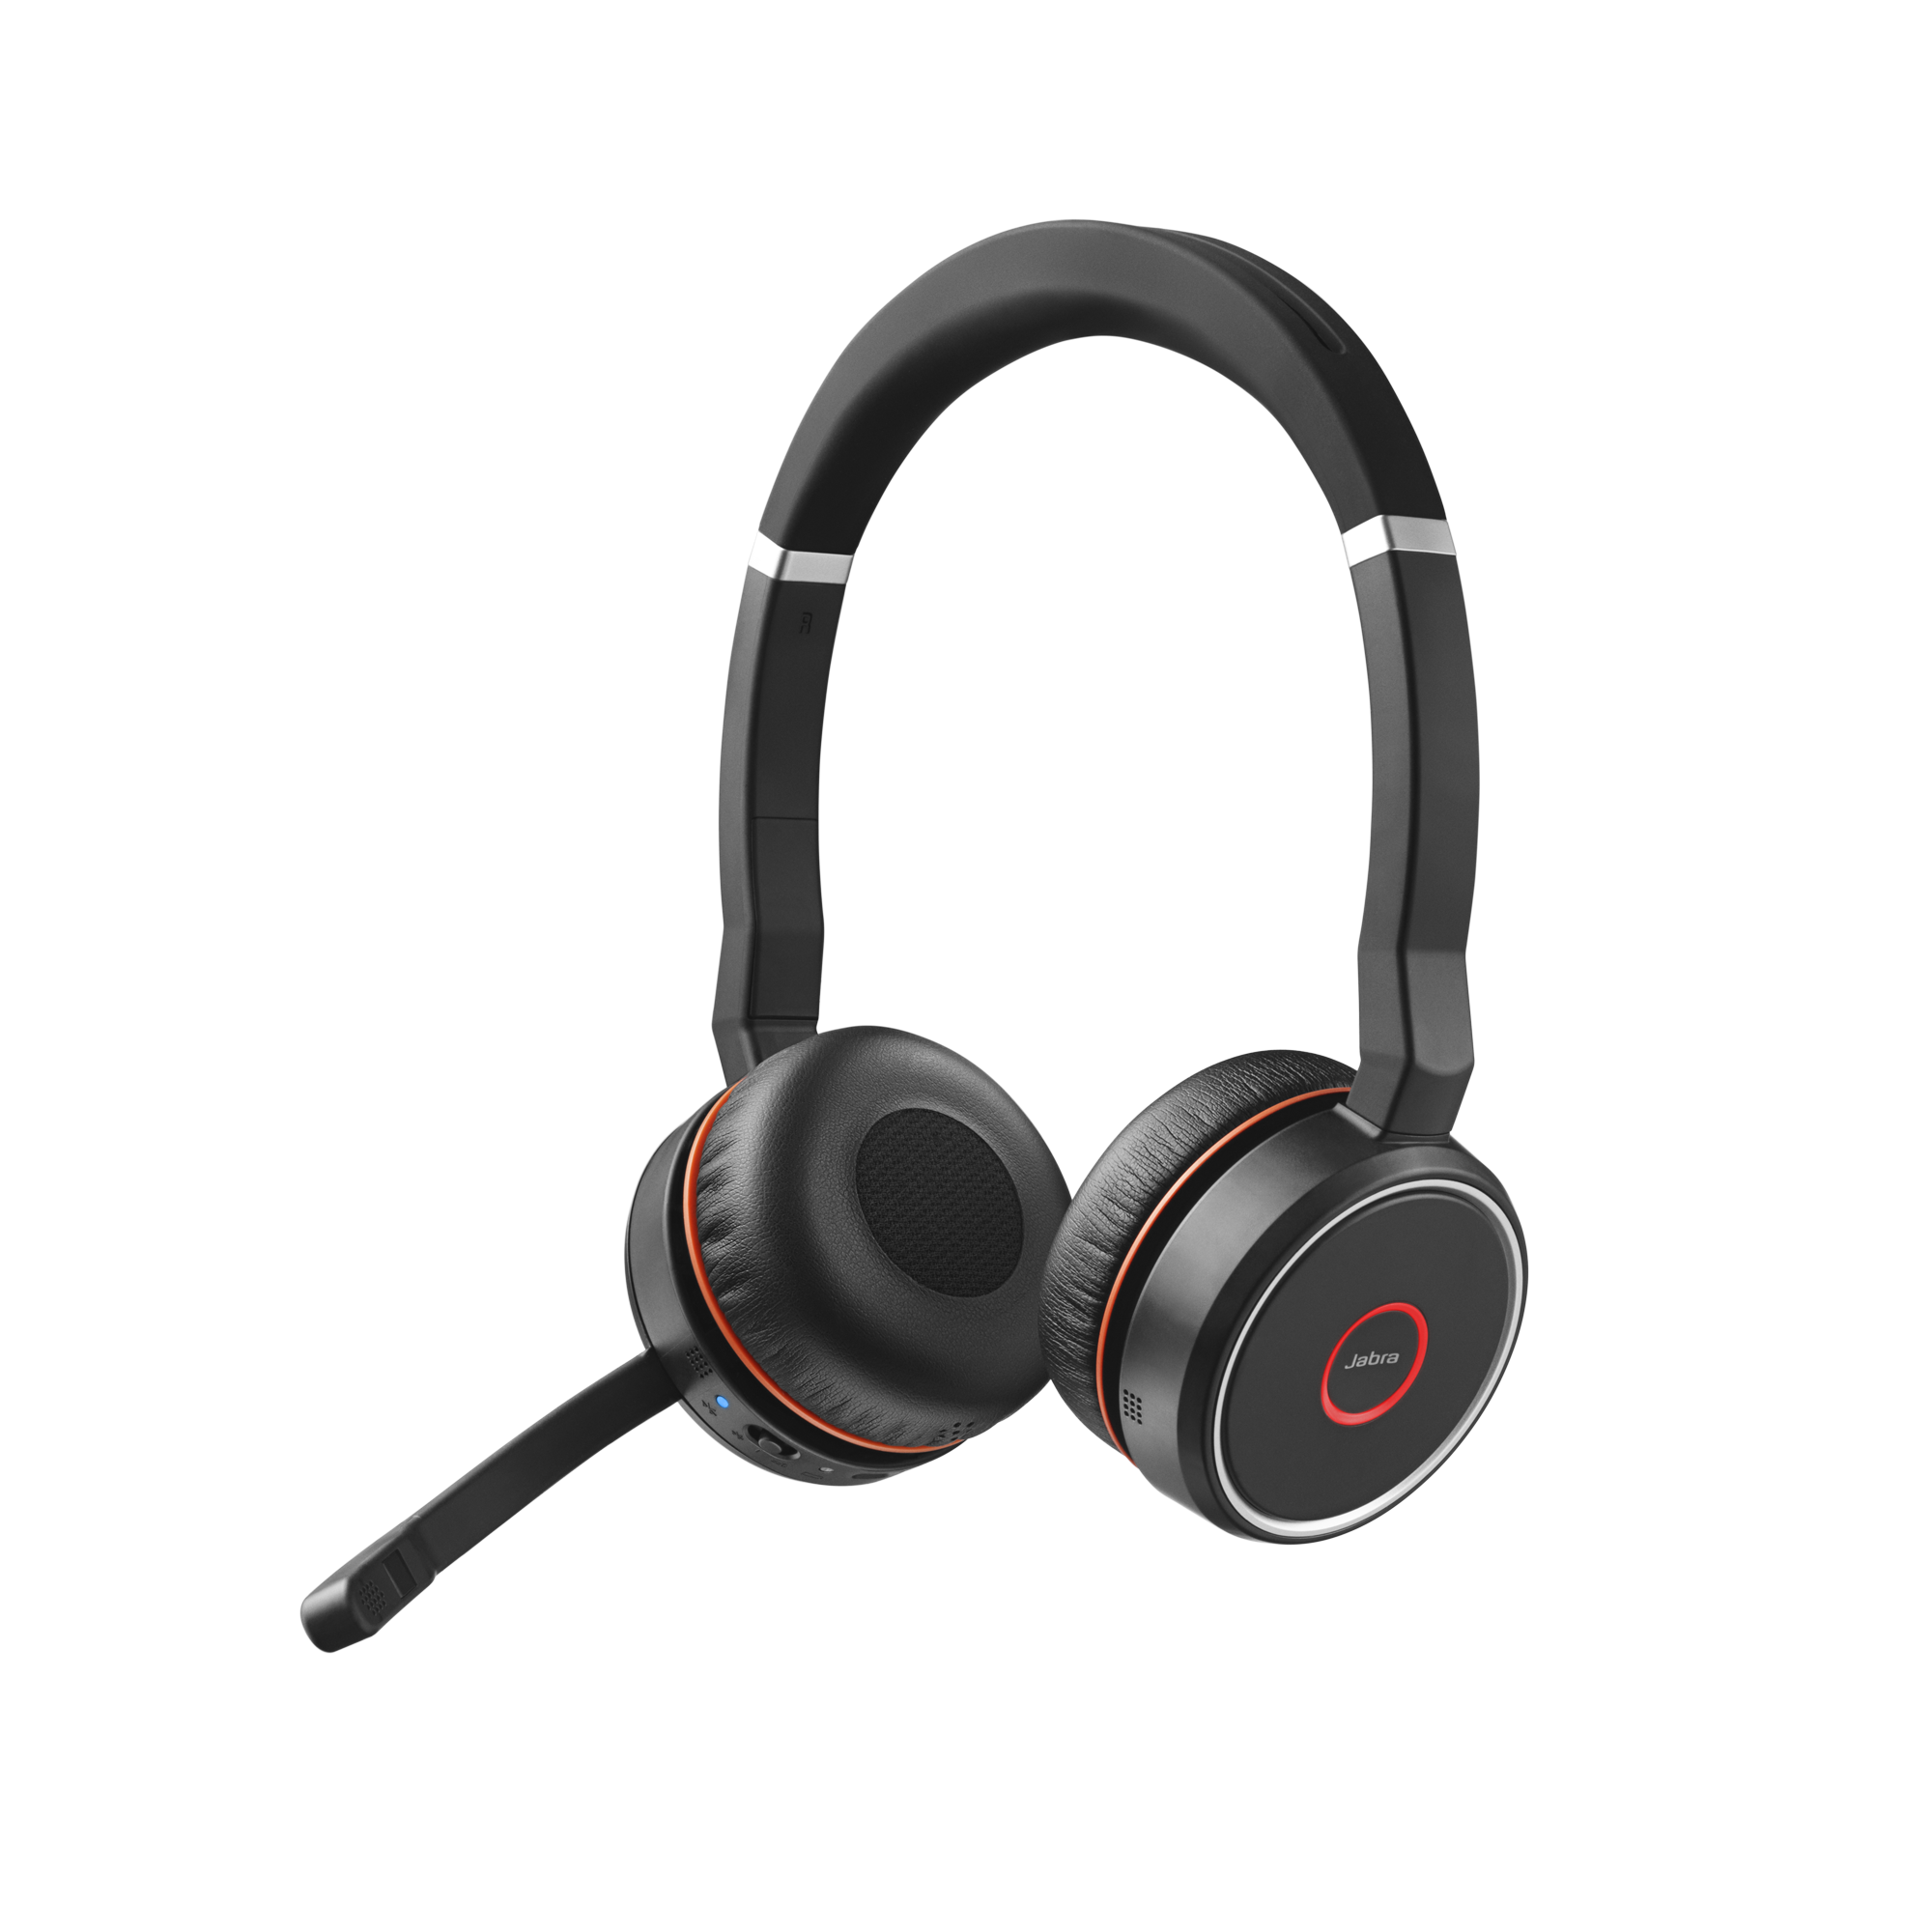 7320d5b0beebcb586859aa3a2de45582fd462e38_01_Jabra_Evolve_75_product_angle_busy.png